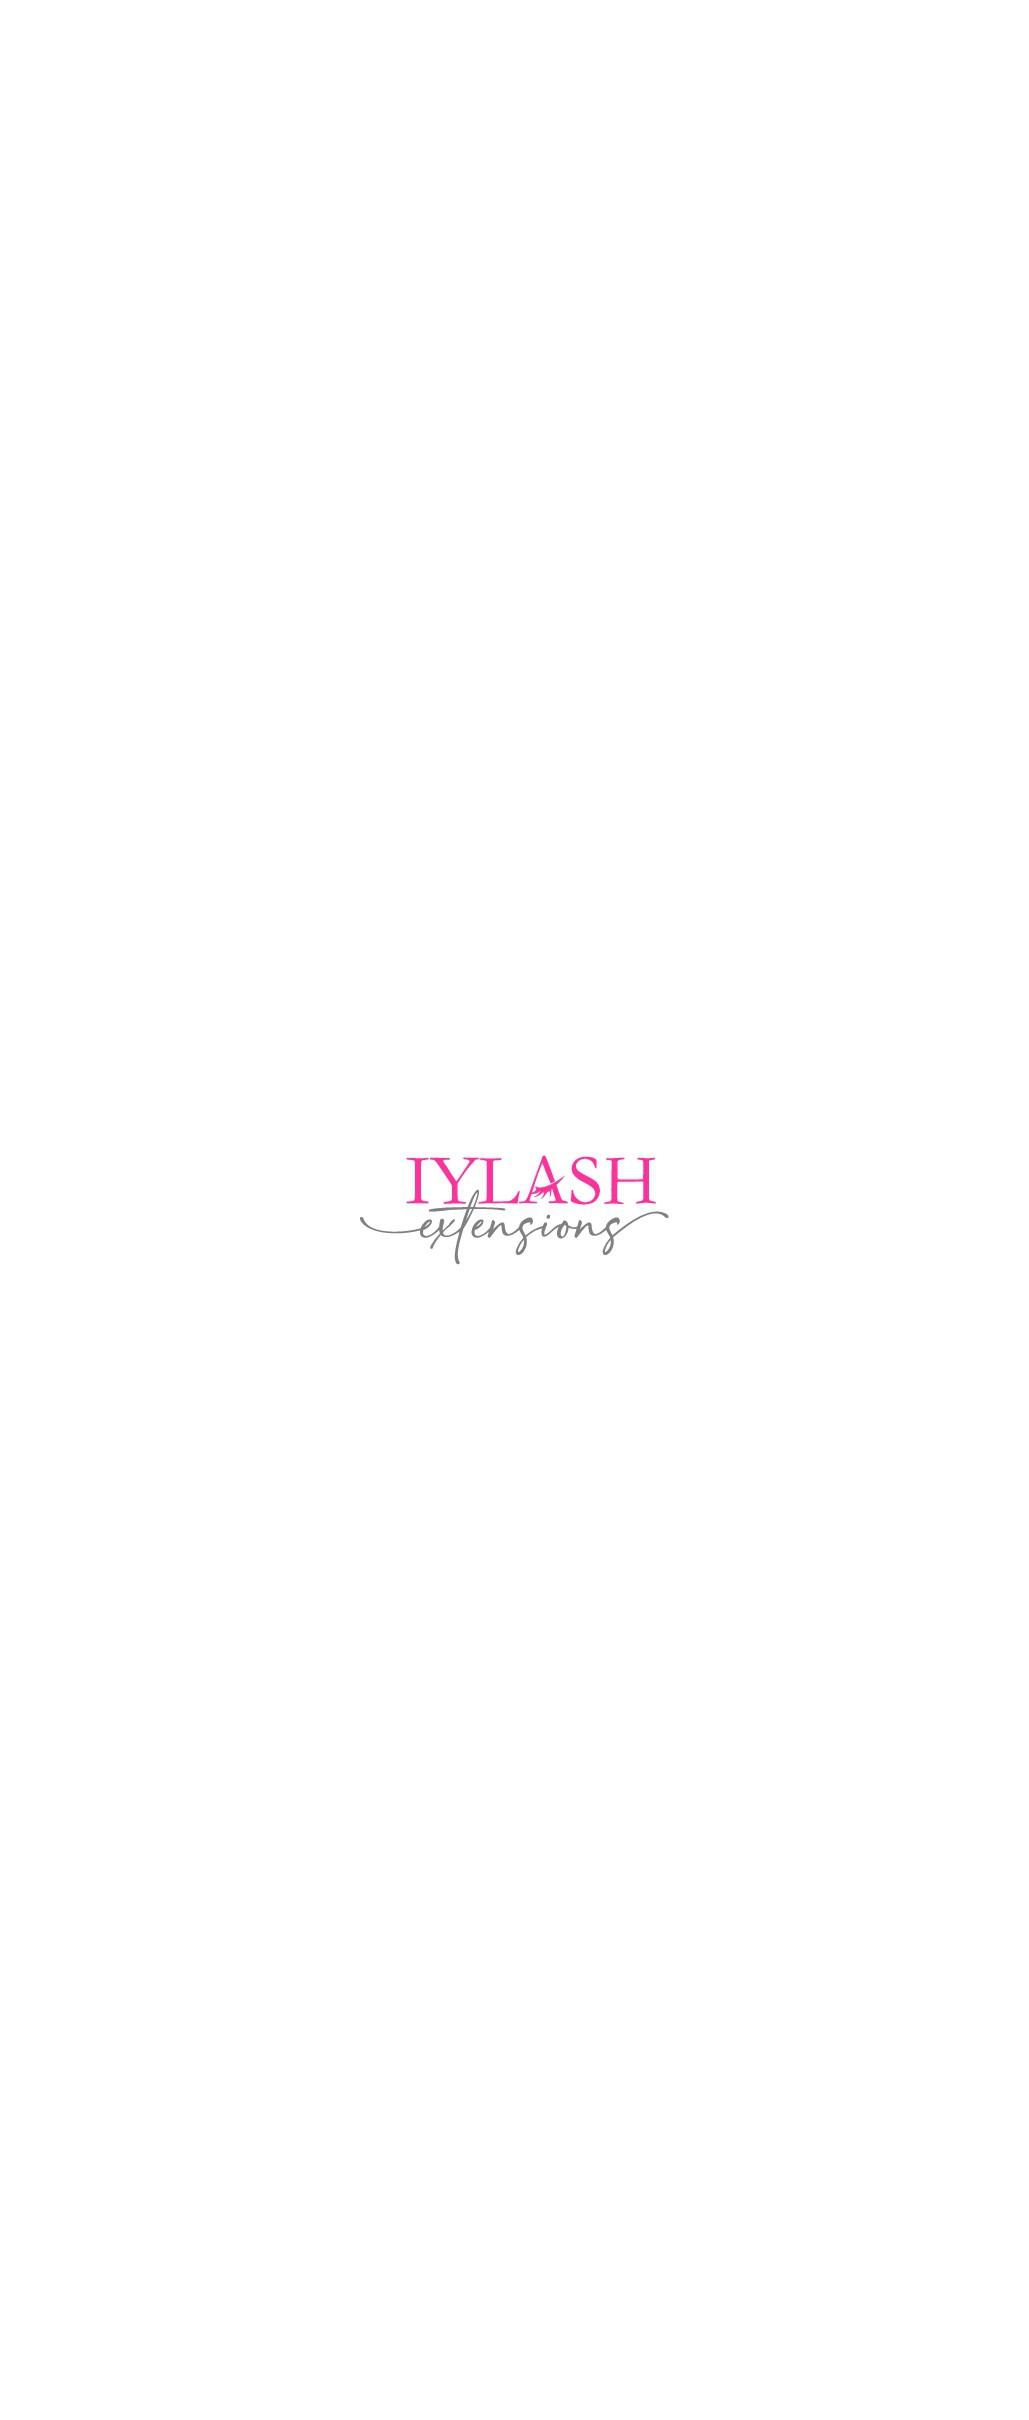 New estetician looking for a boss babe logo for lash extensions!